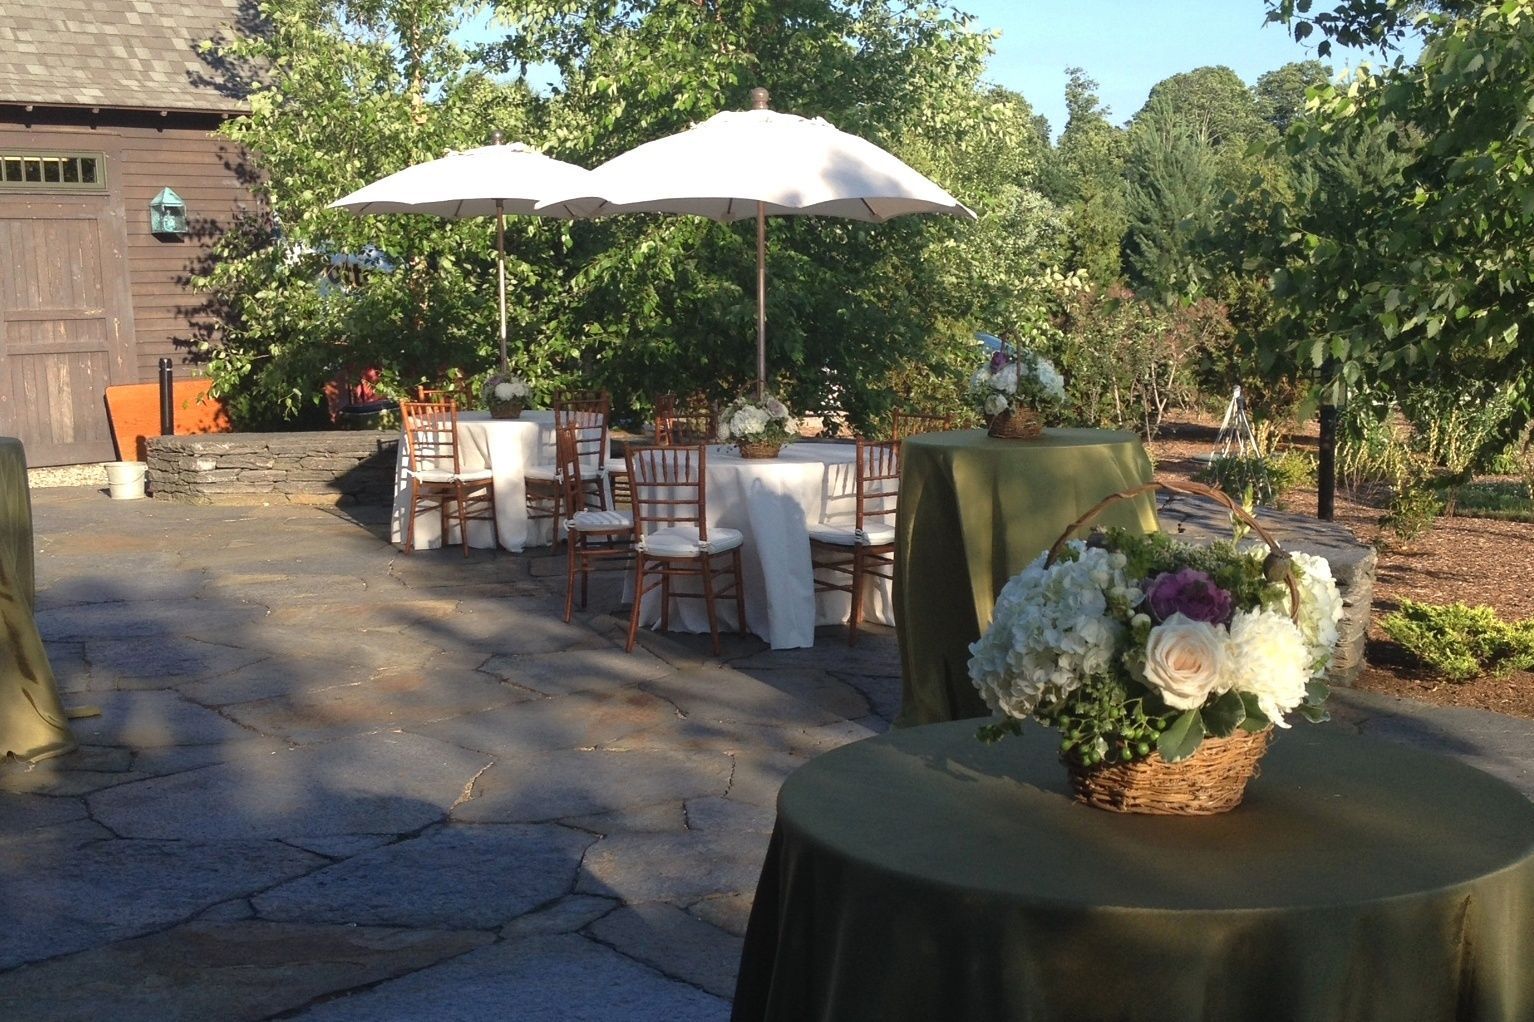 Quonquont Farms Patio | Blue Heron Catering | Be Our Guest Party Rentals |  Umbrella Tables